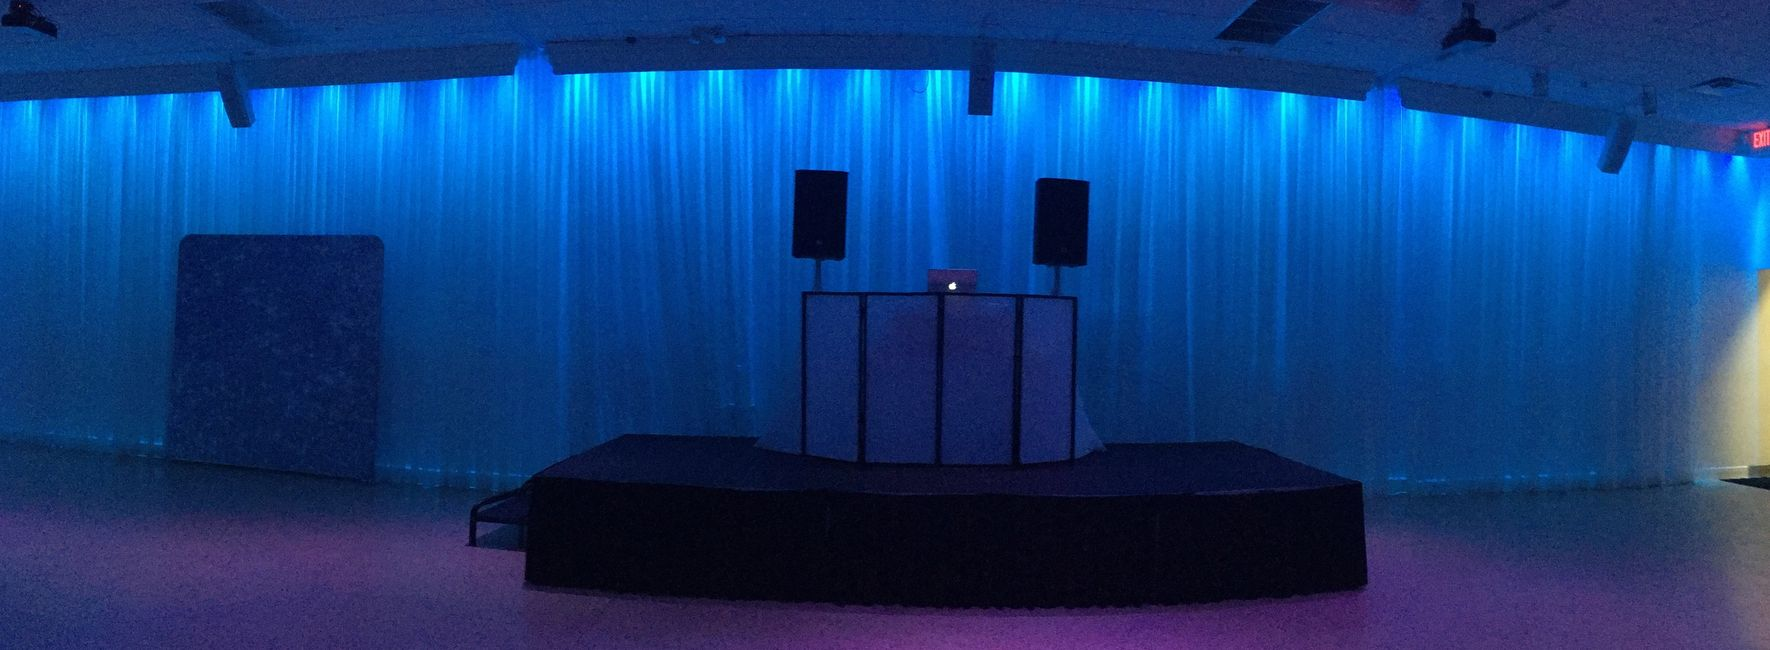 Custom DJ equipment setup service,DJ booth and stage rental